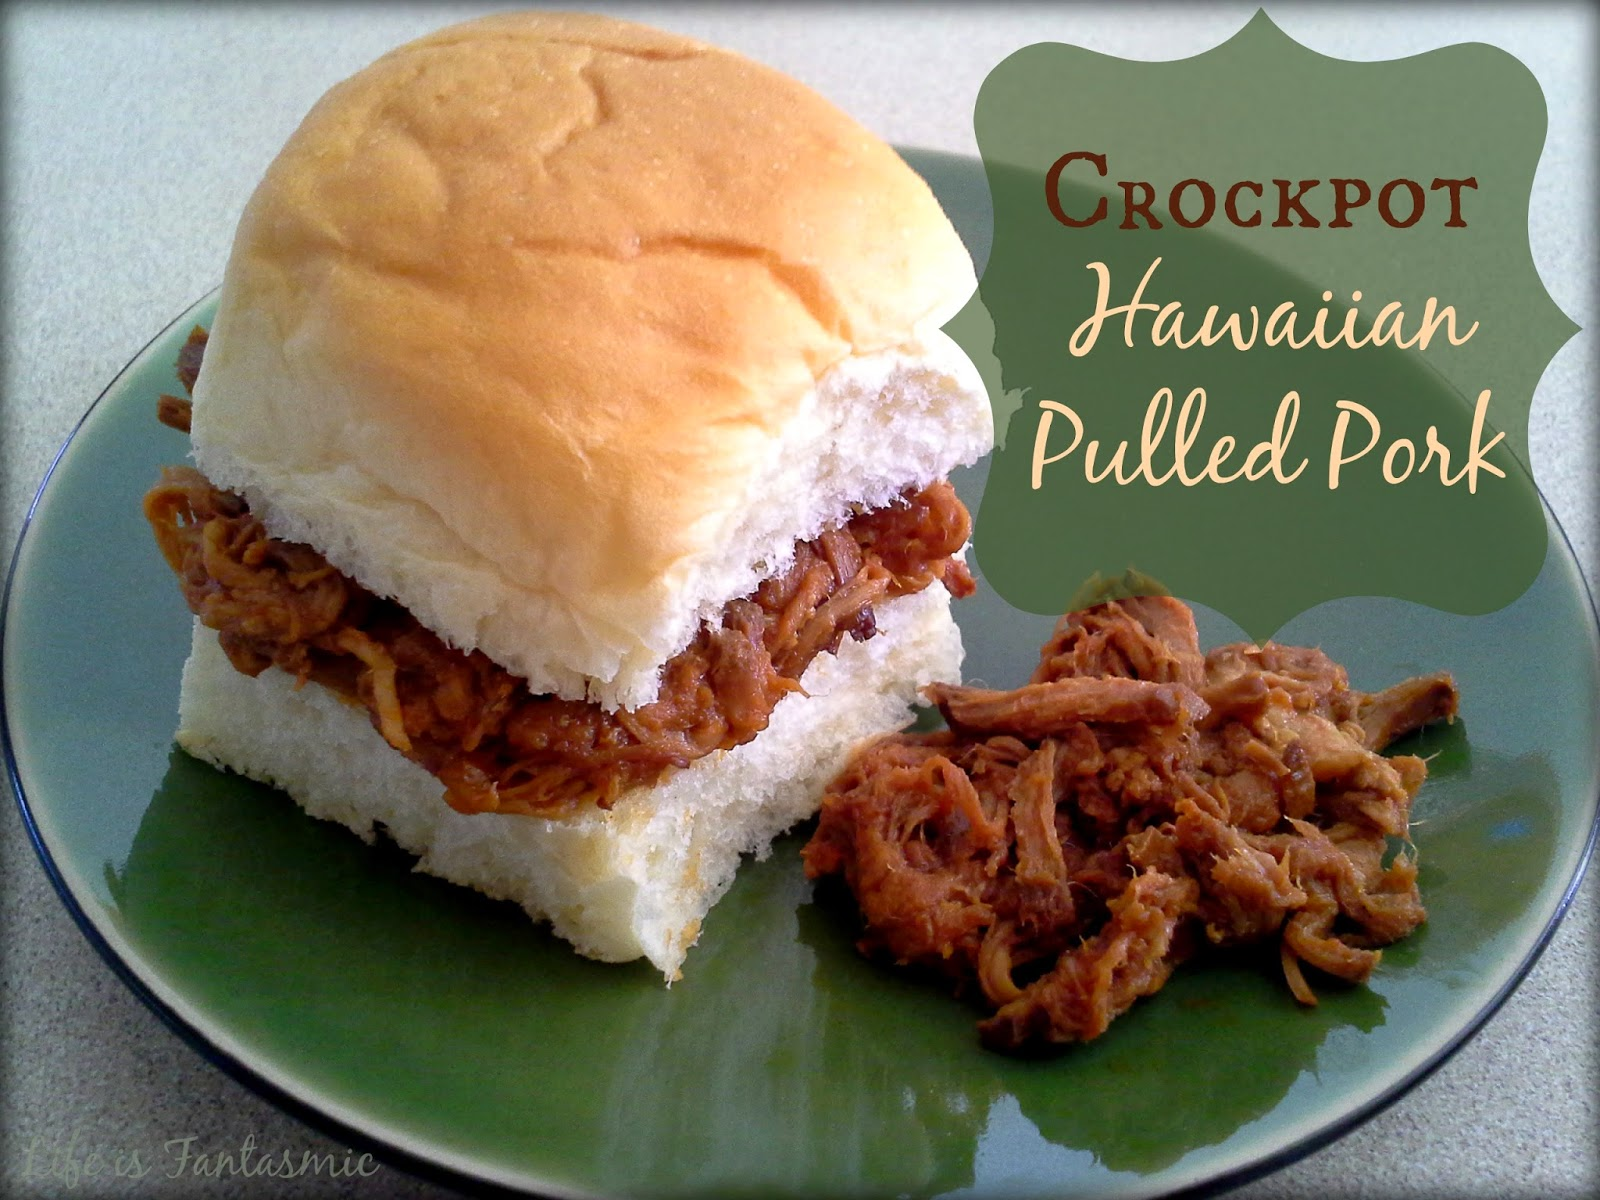 ... recipe for Slow Cooker Hawaiian Pulled Pork over at East 9th Street